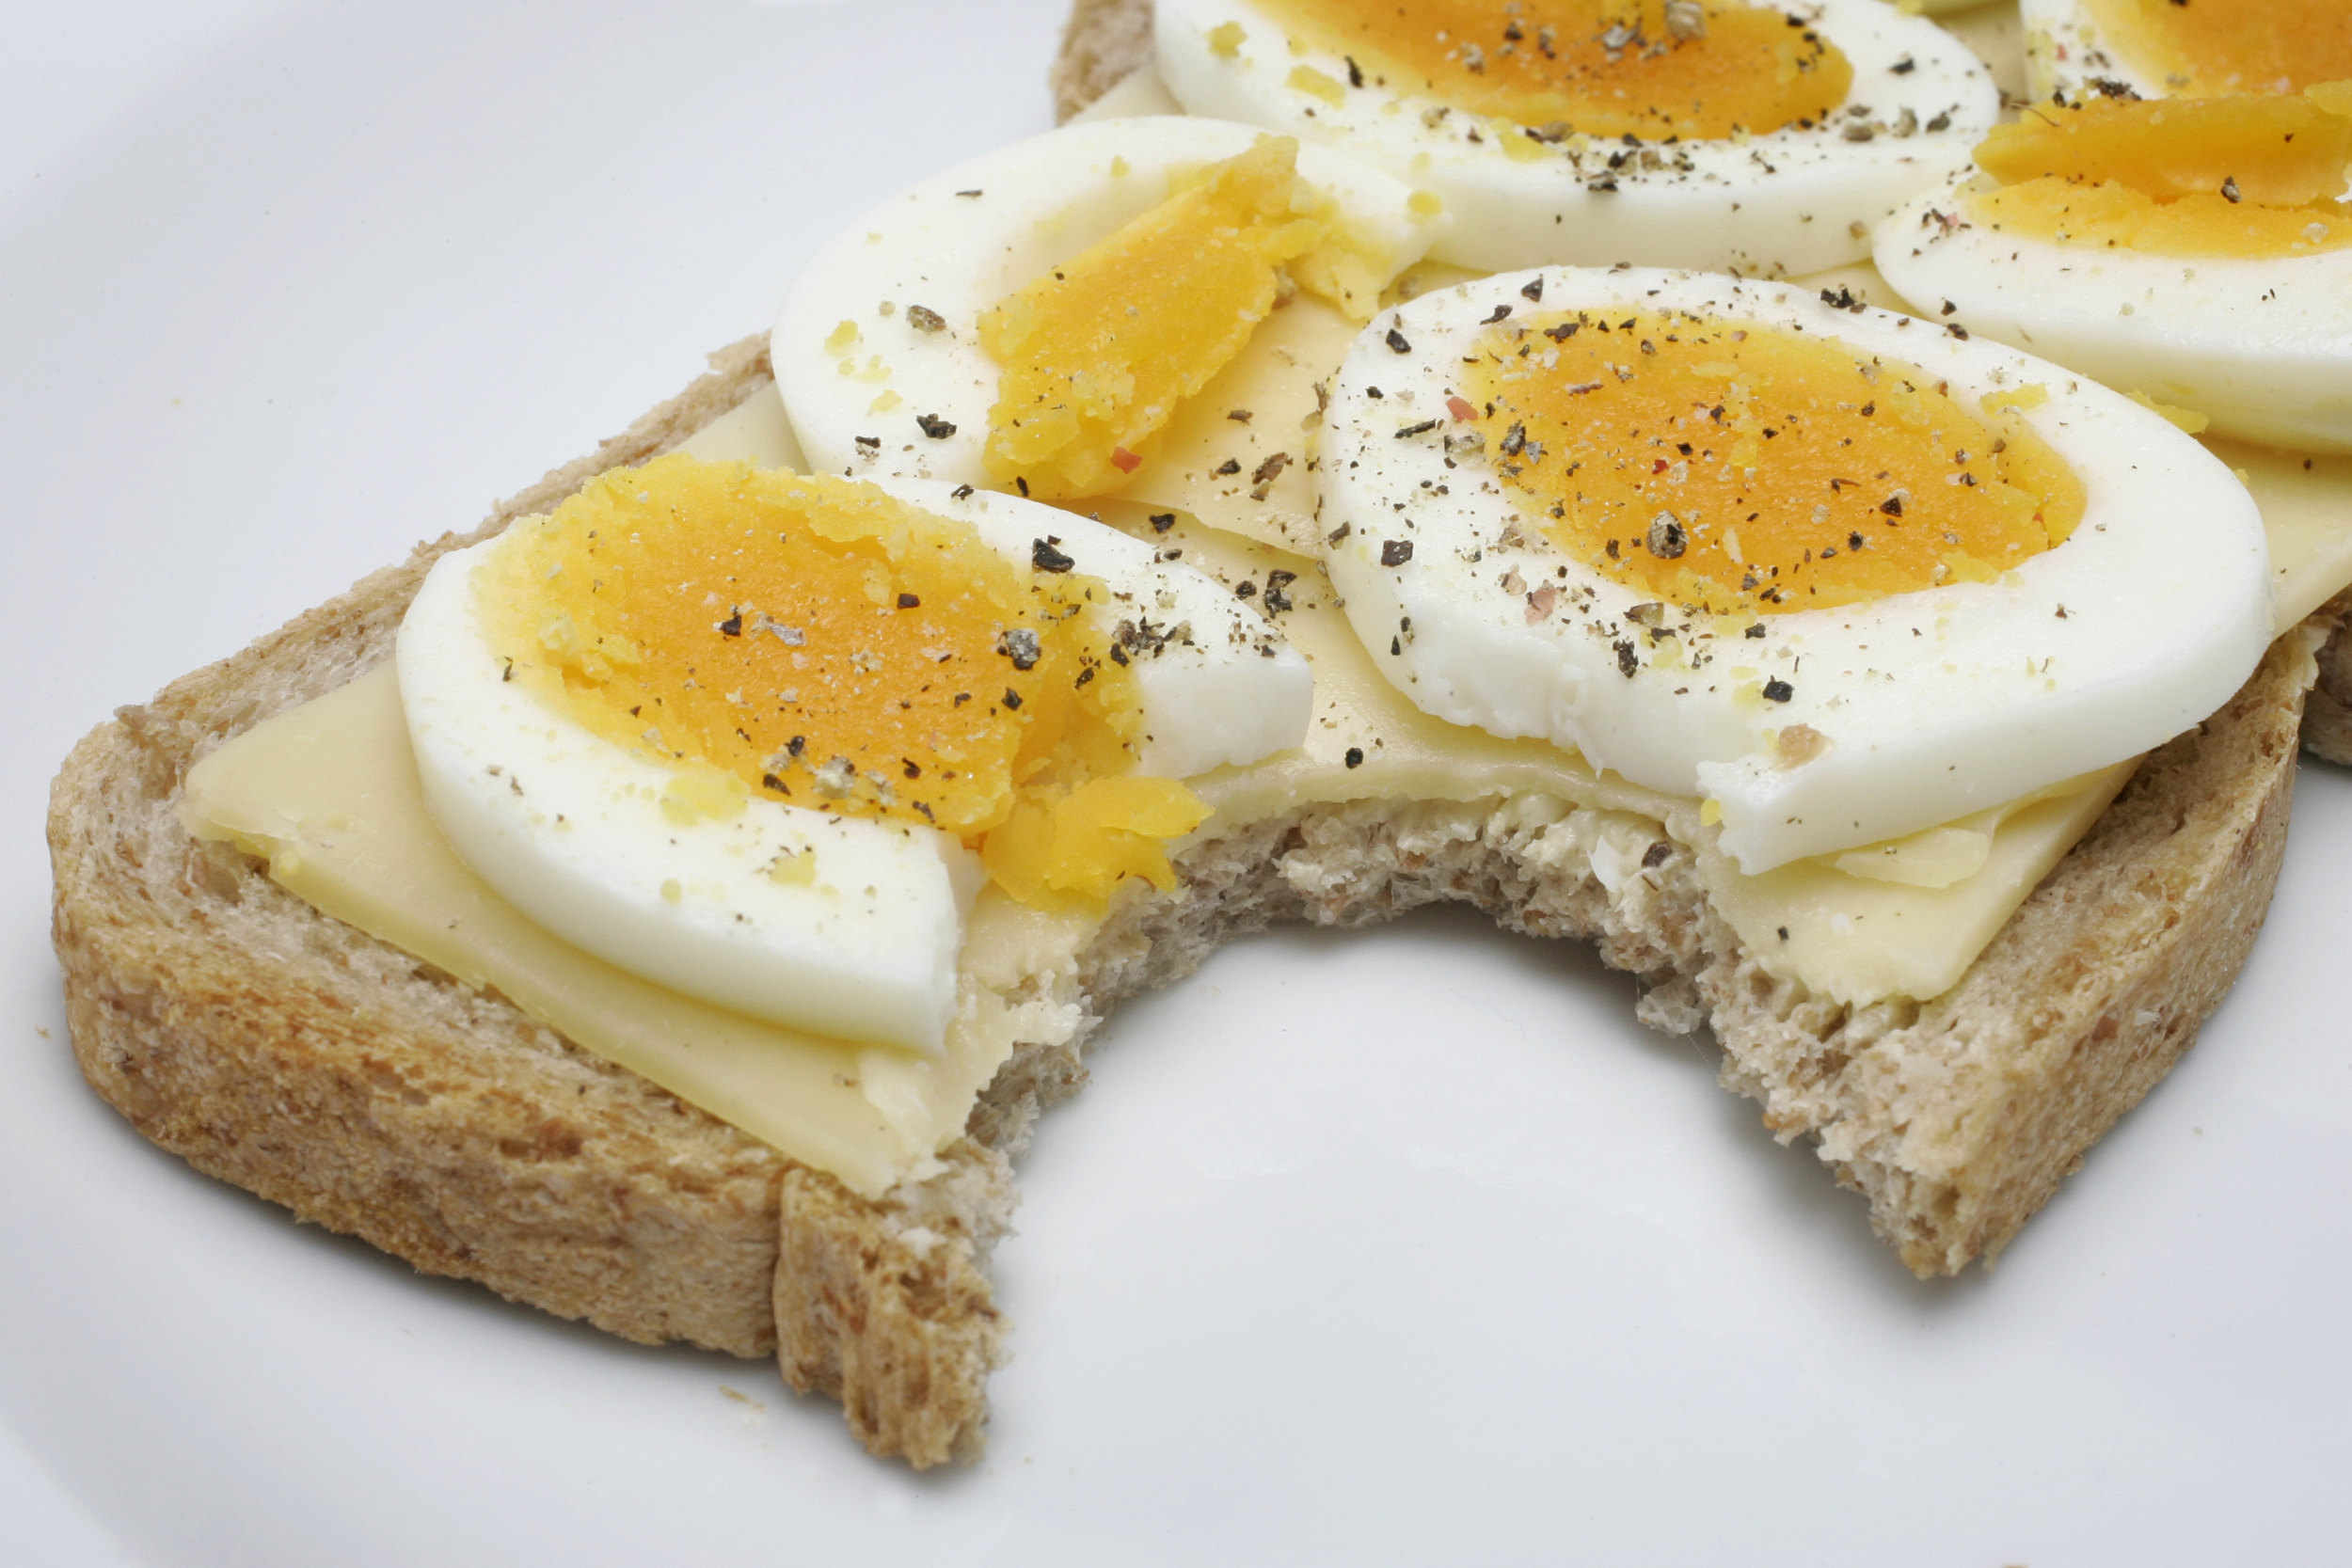 lunch brood bread kaas cheese ei egg boterham sandwich peper pepper zout salt